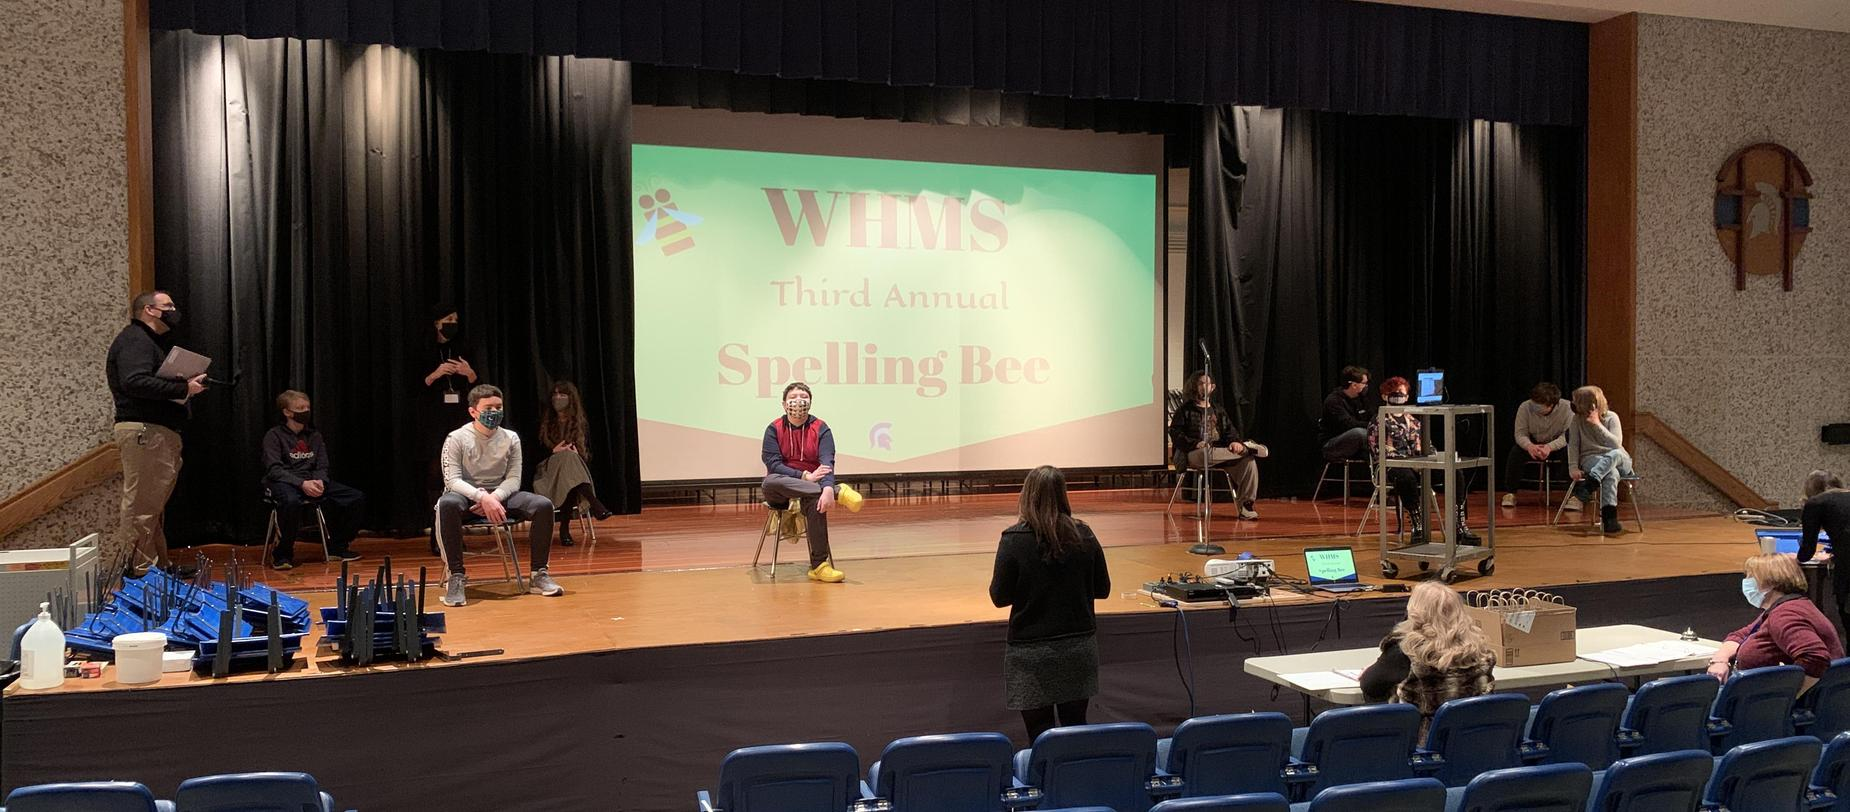 Final directions before the spelling bee begins!